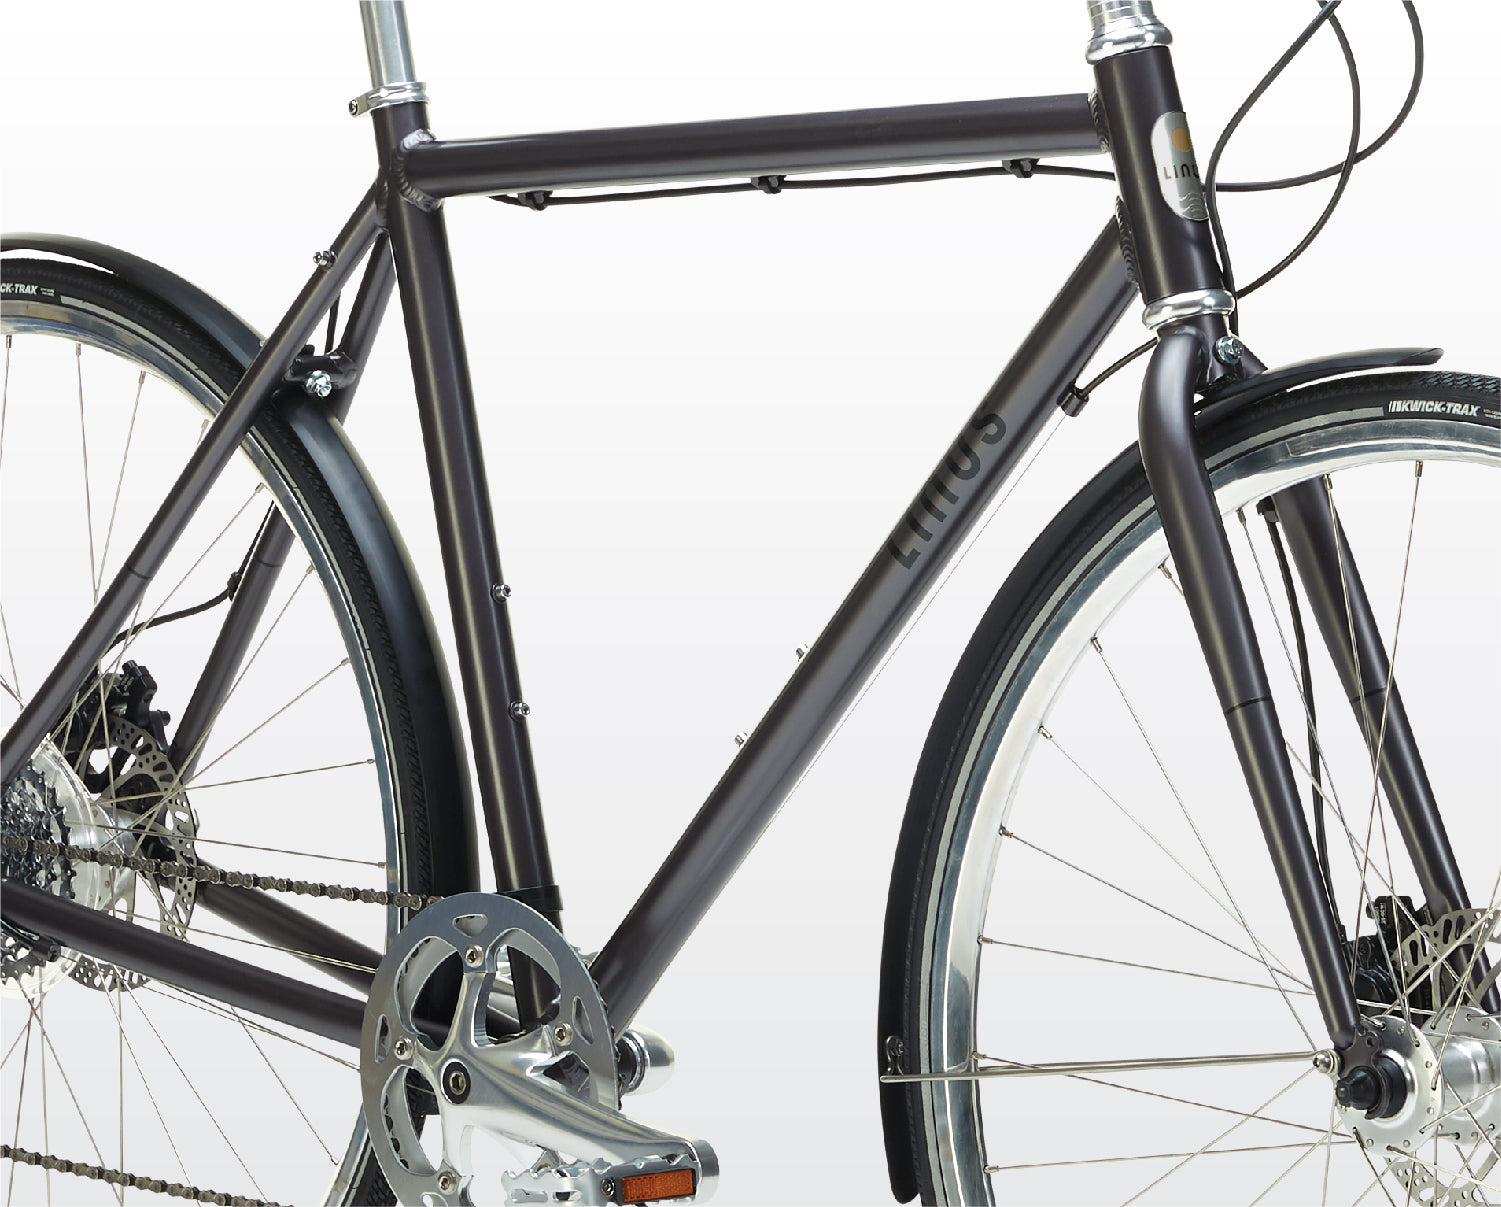 In The Details - Light-Weight Alloy Frame Set